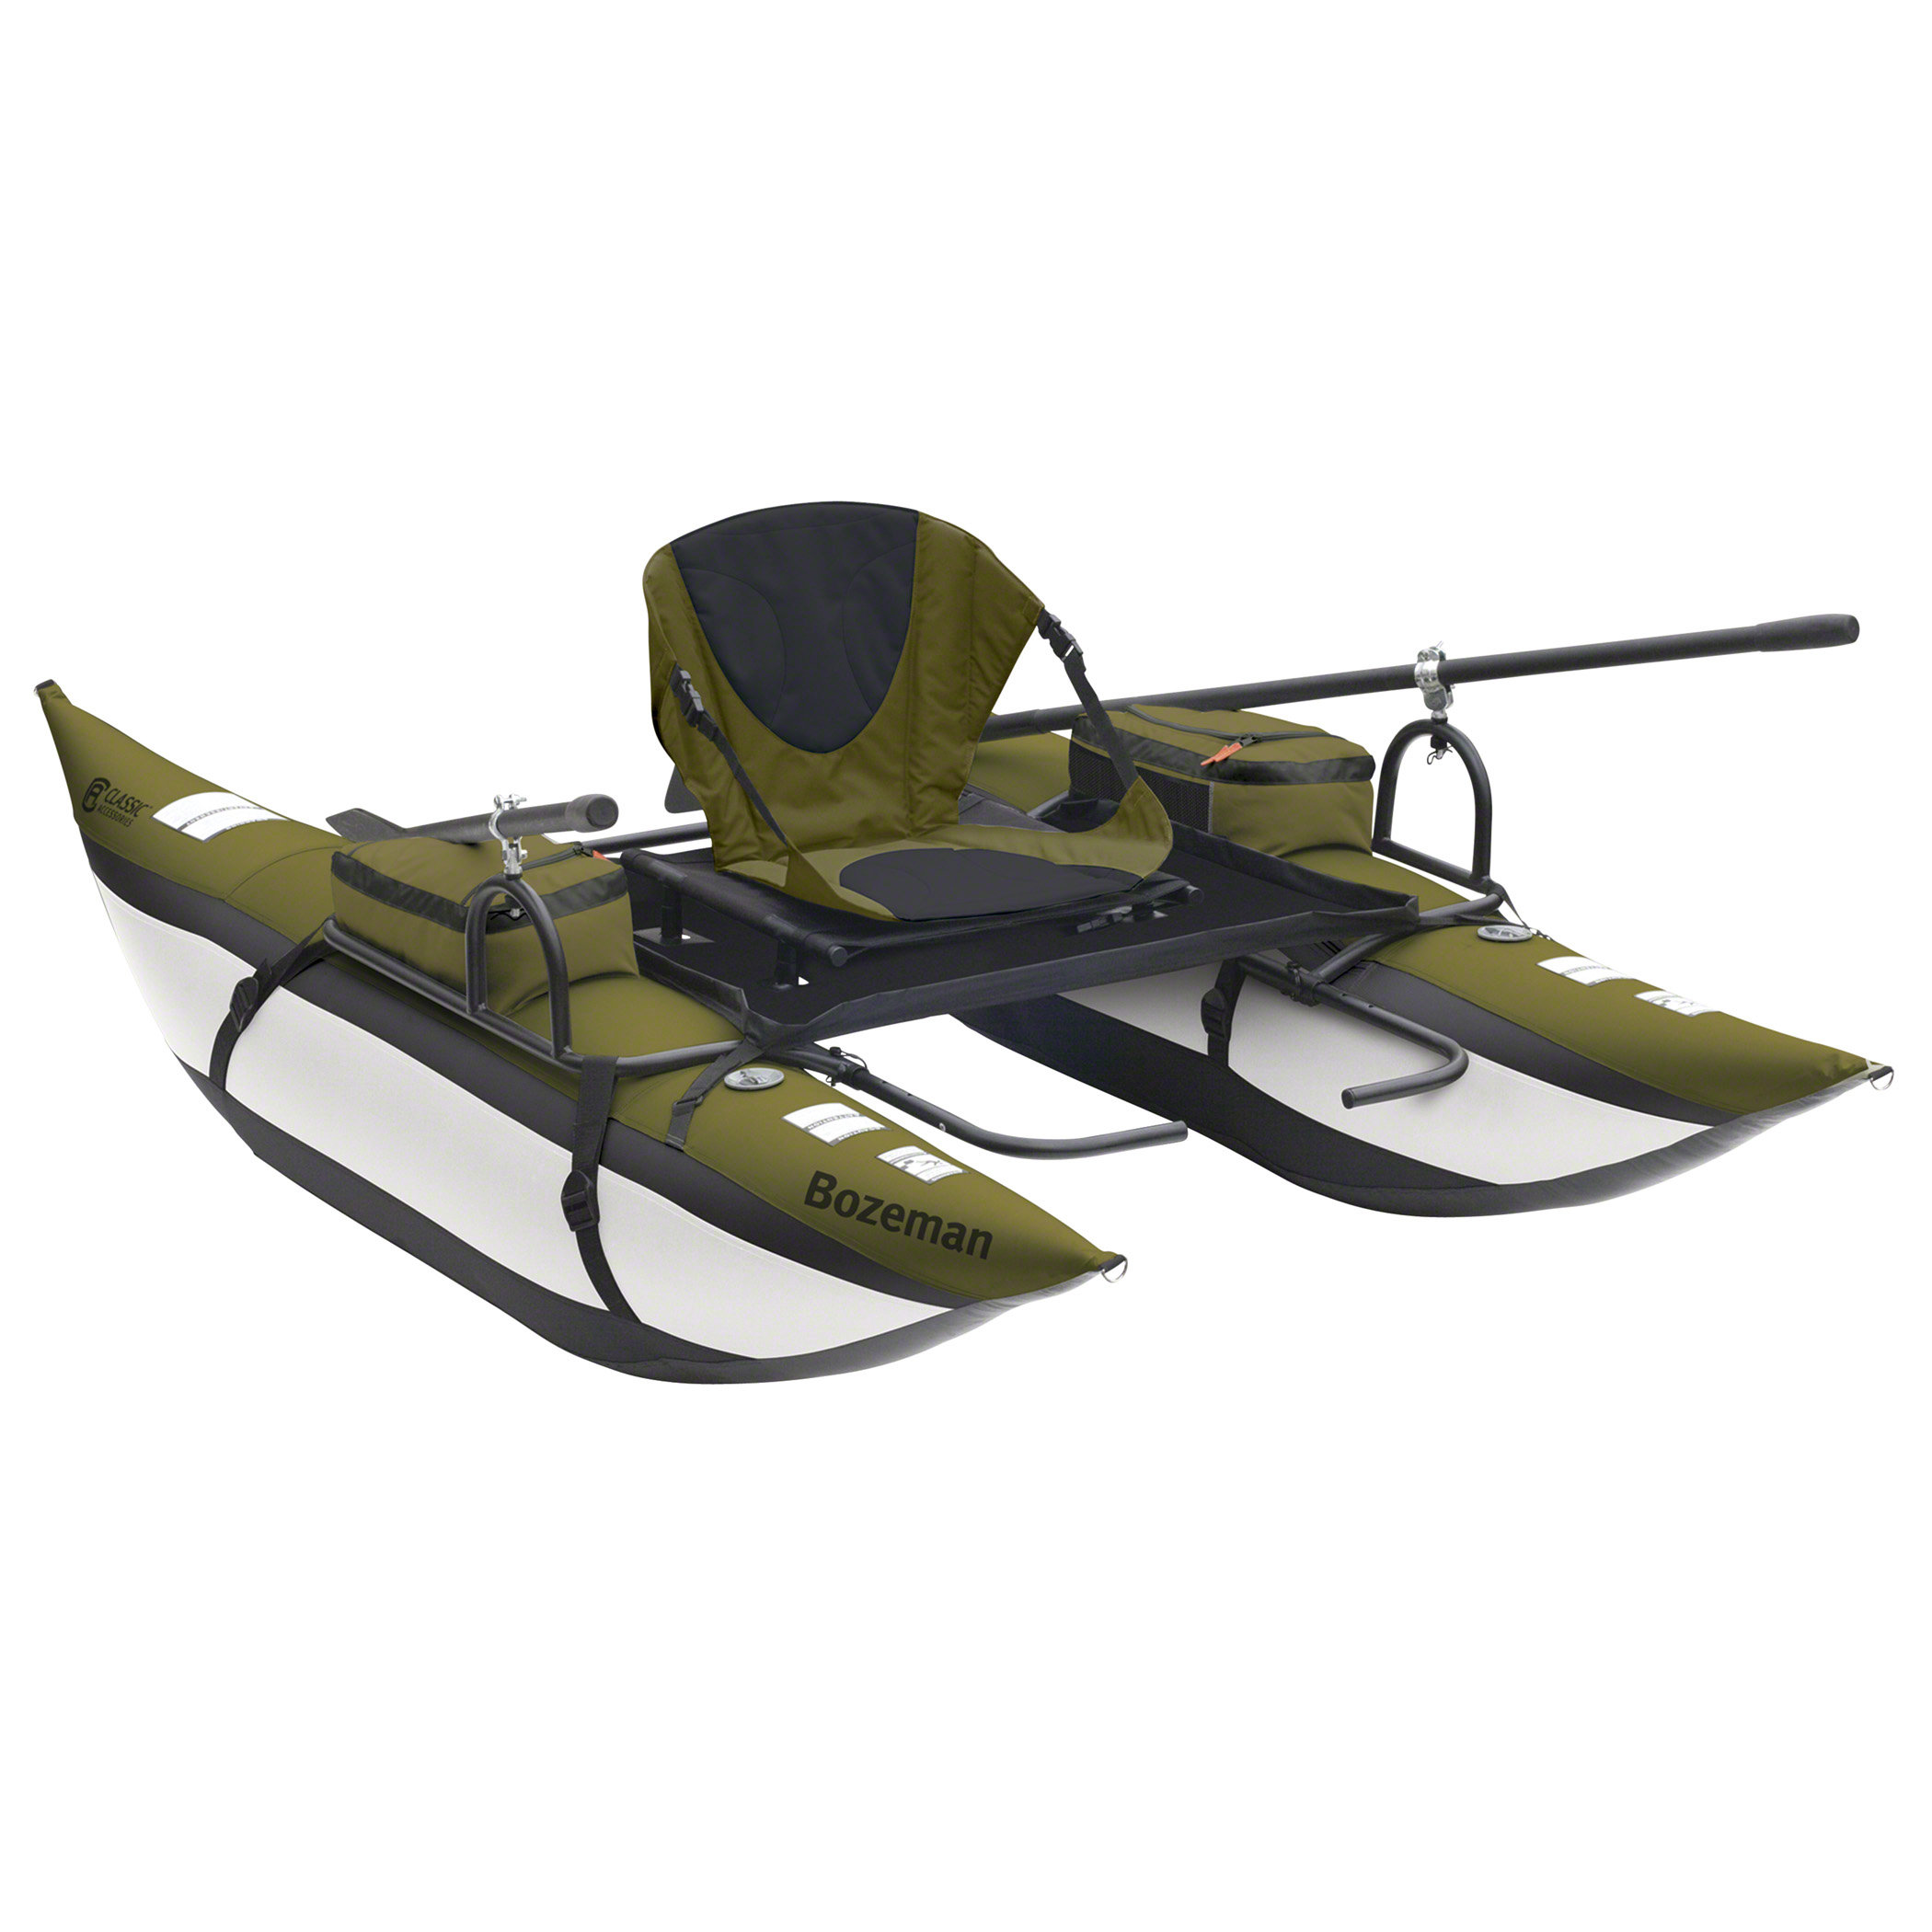 com classic accessories bozeman inflatable pontoon boat with backpack fishing boats